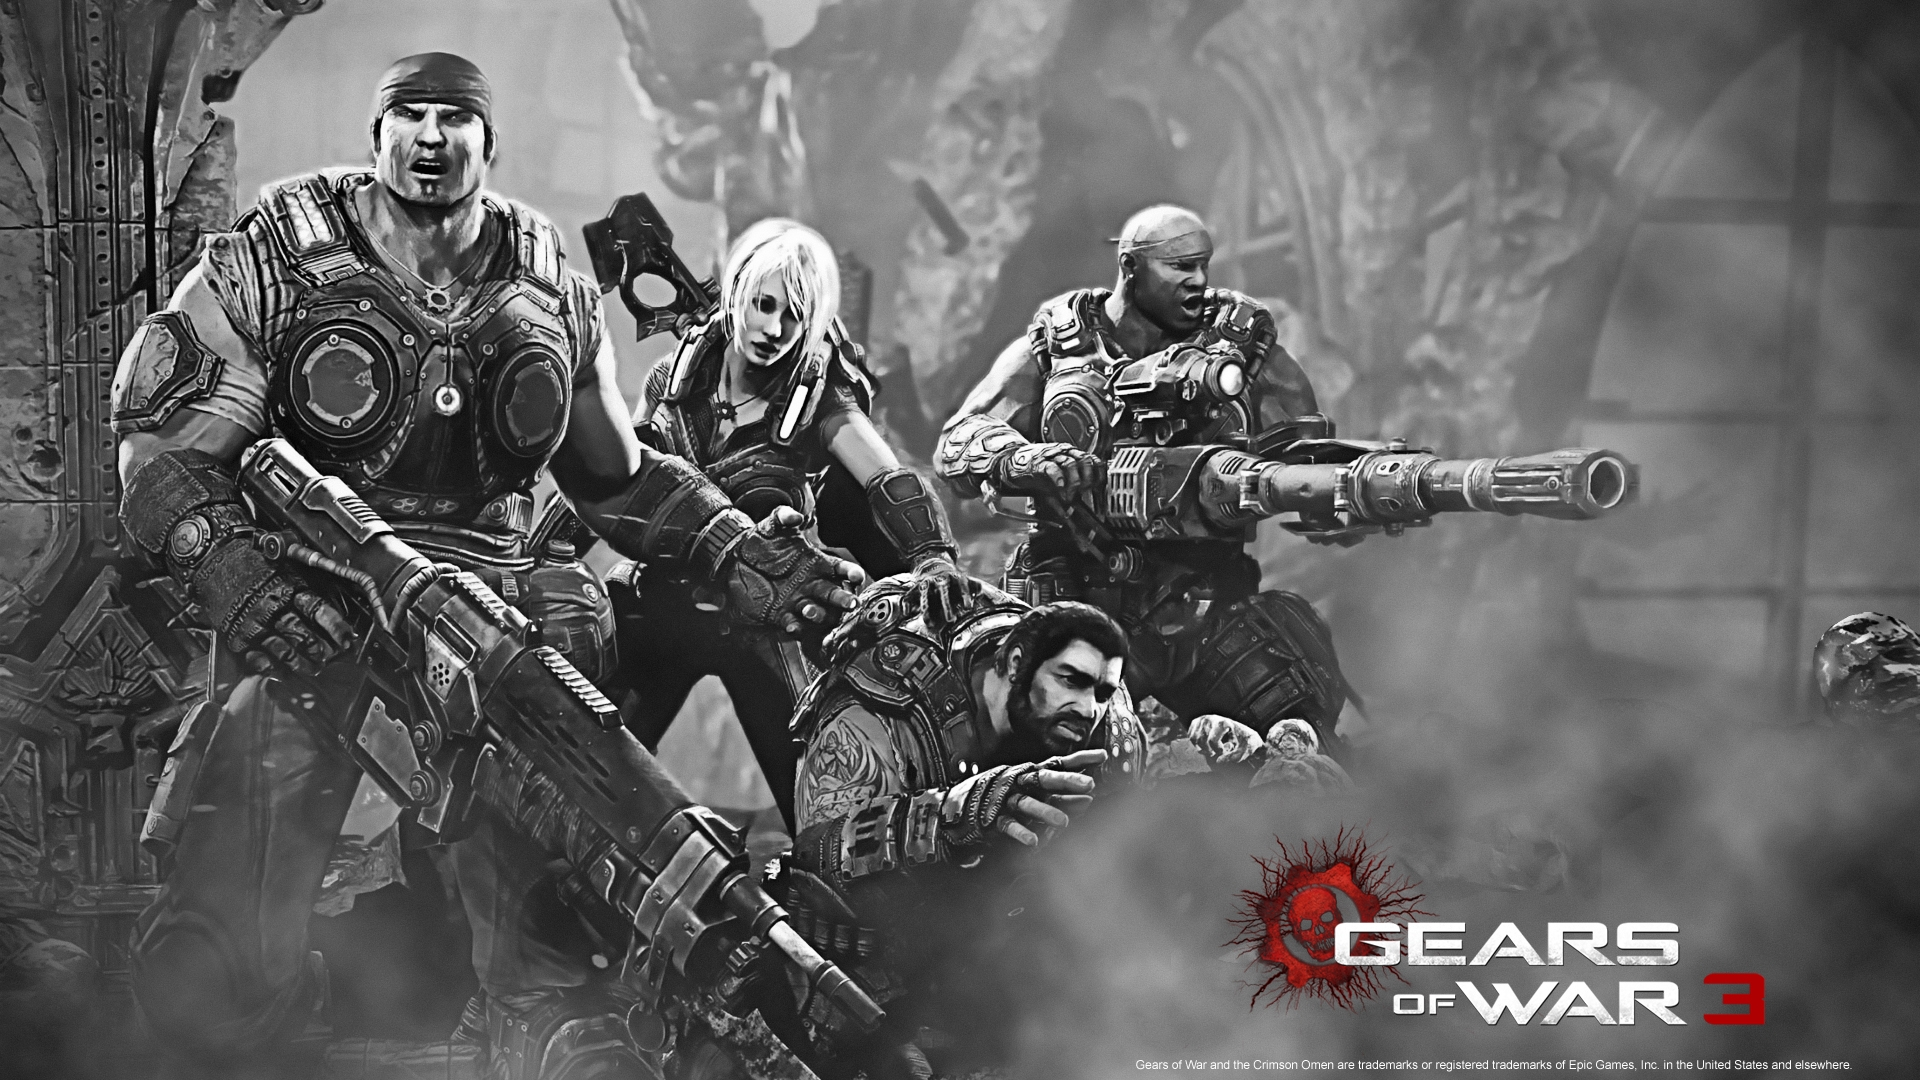 Download Wallpaper 1920x1080 Gears Of War 3, Gun, Girl